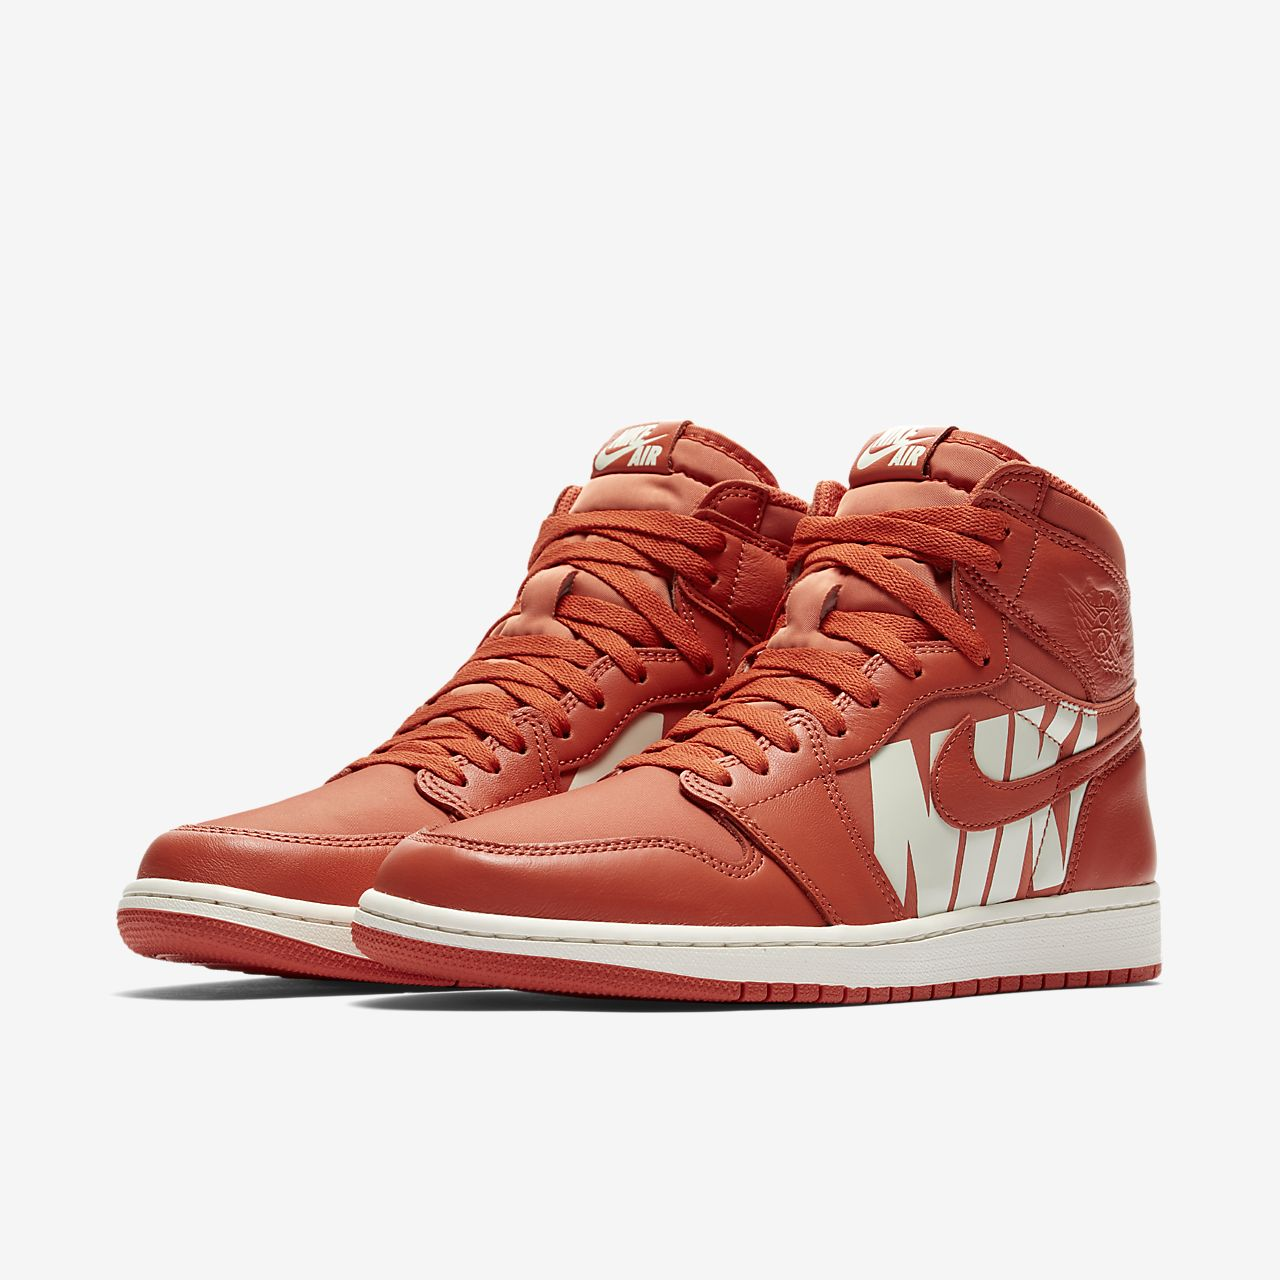 28a6206b971d Air Jordan 1 Retro High OG Shoe. Nike.com NZ